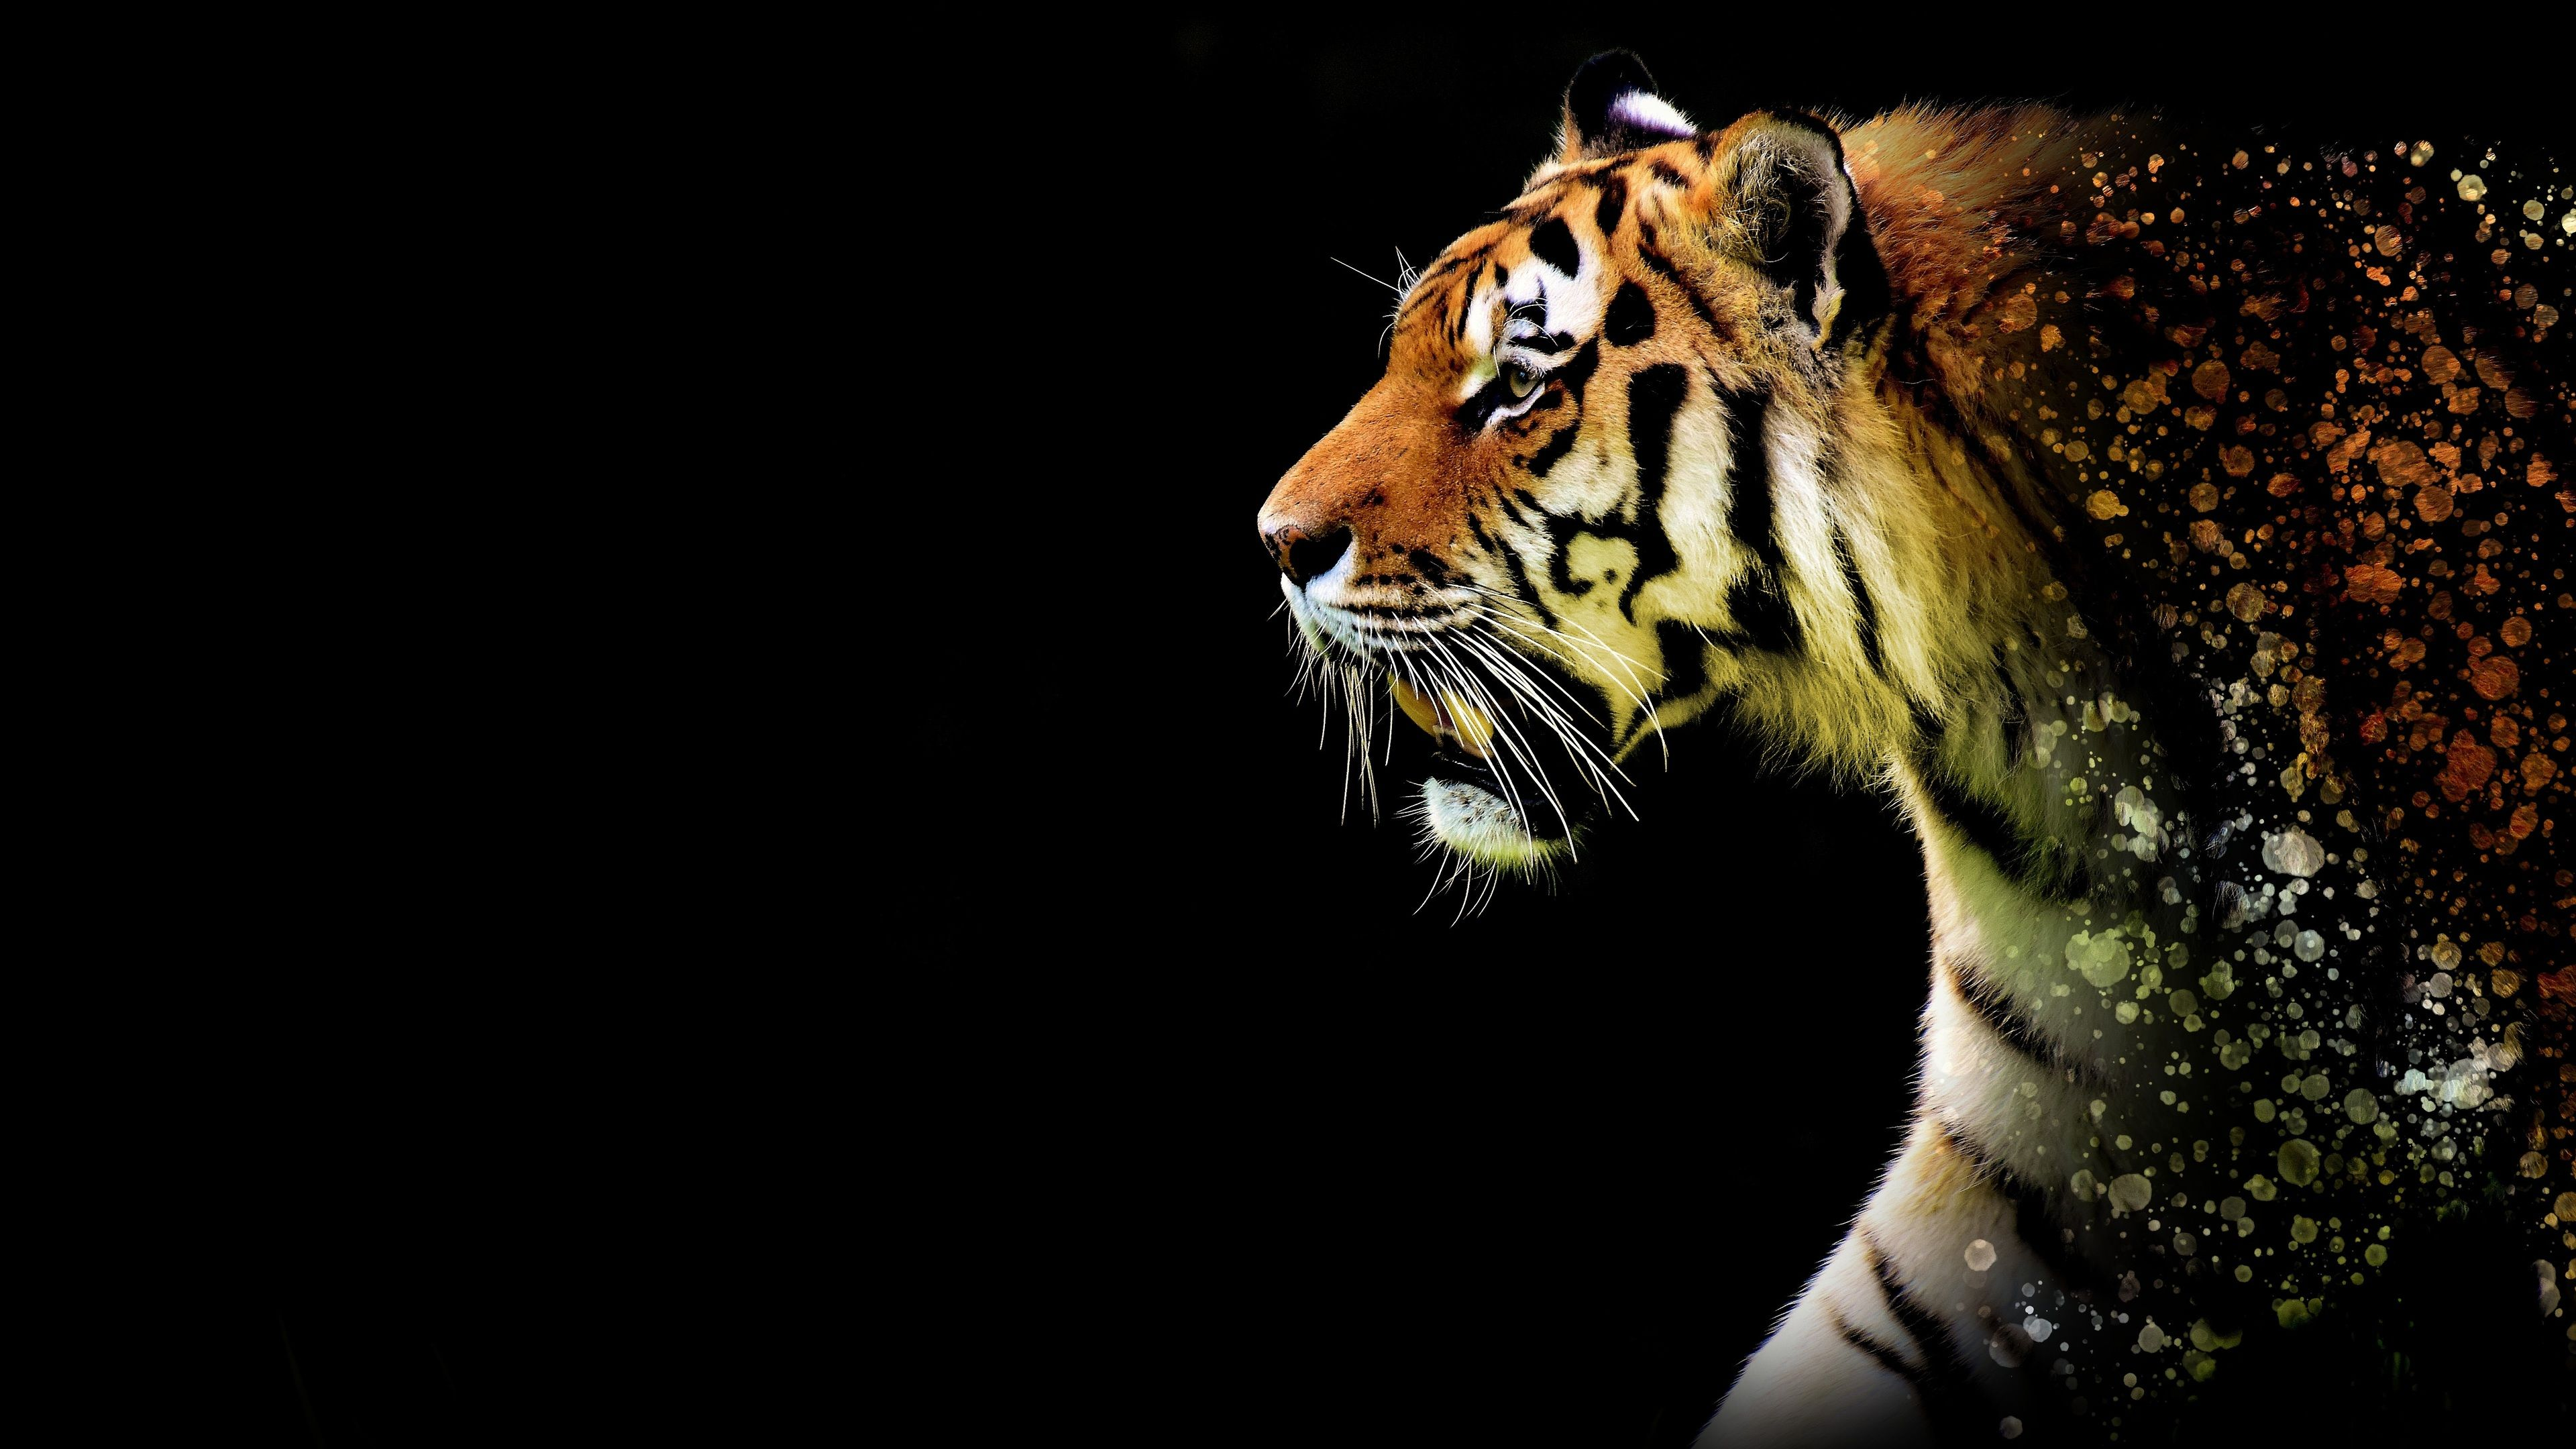 Tiger Abstract 4k Tiger Wallpapers Hd Wallpapers Artwork Wallpapers Animals Wallpapers Abstrac Animal Wallpaper Geometric Animal Wallpaper Abstract Animals